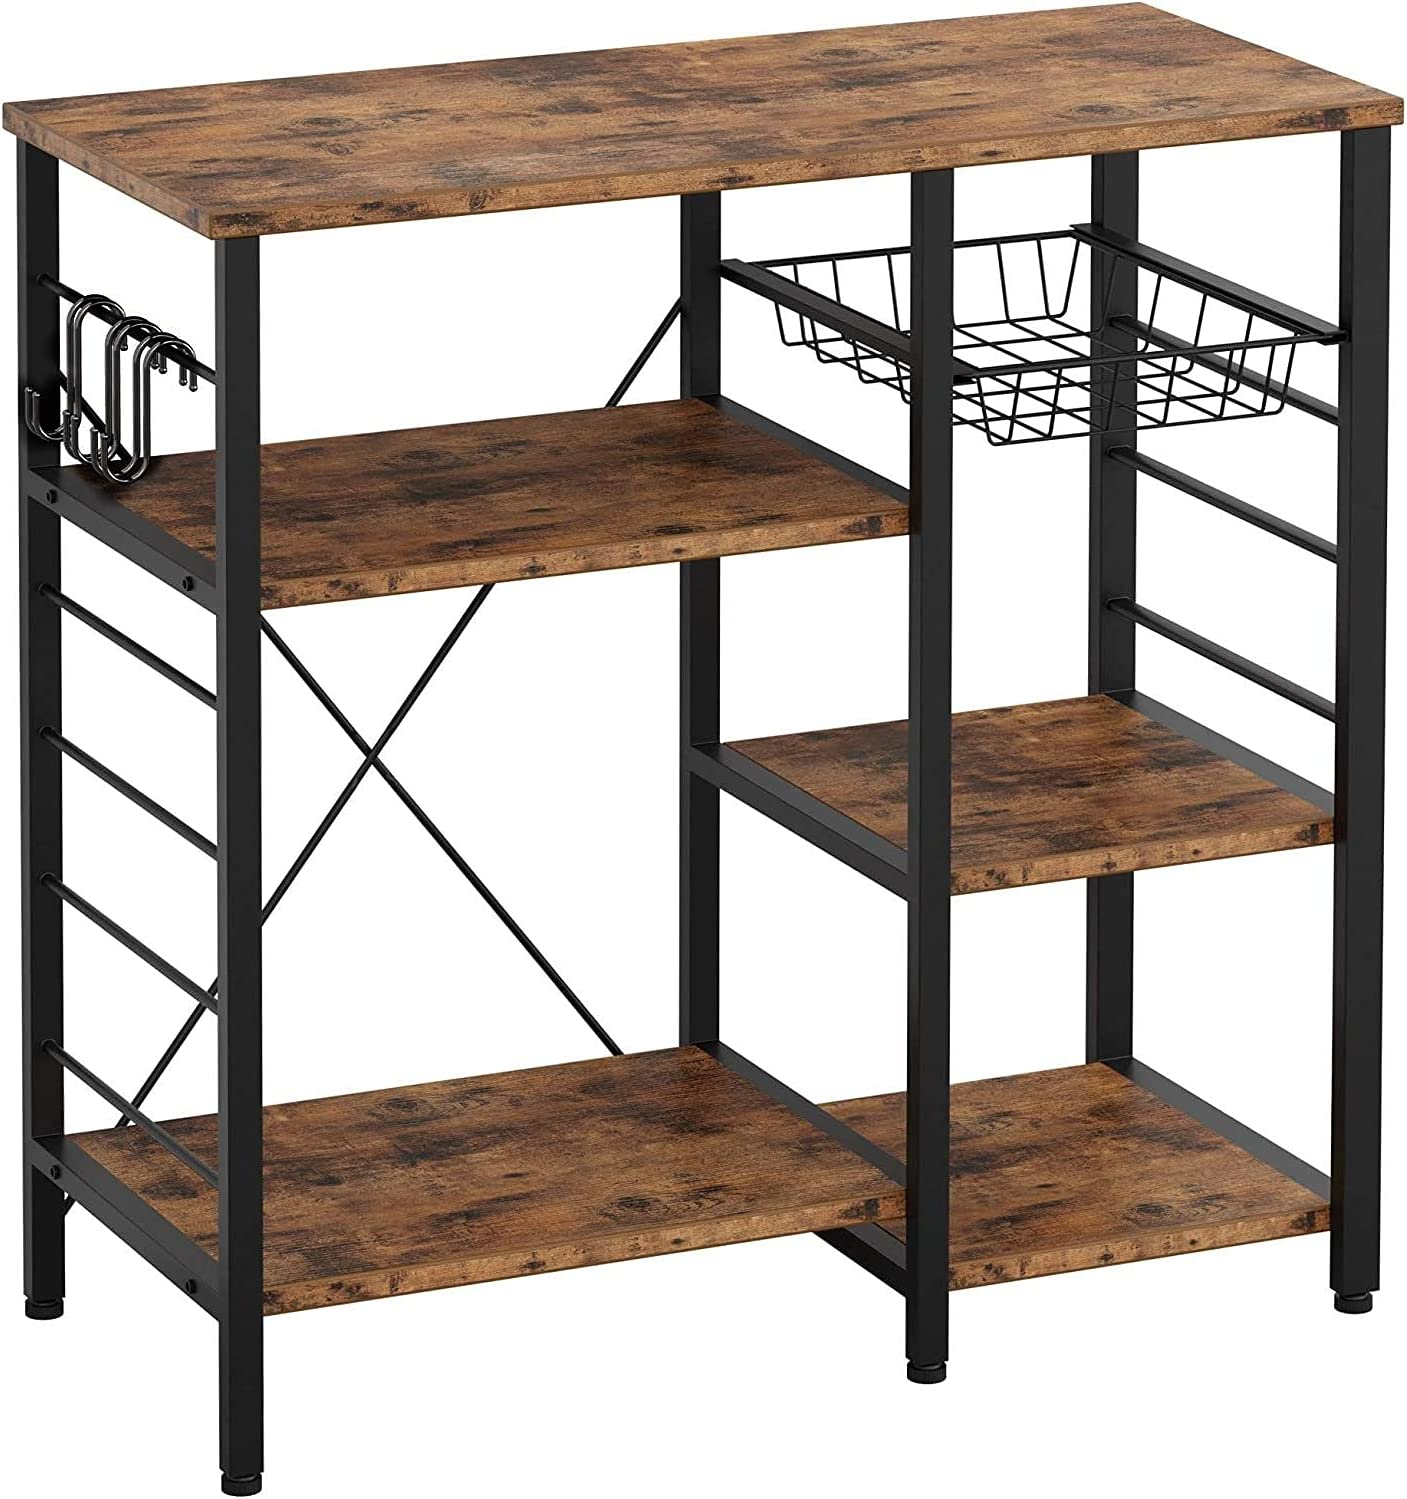 Kitchen Cart 3-Tier Inexpensive Max 40% OFF Baker's Utility Rack Oven Microwave